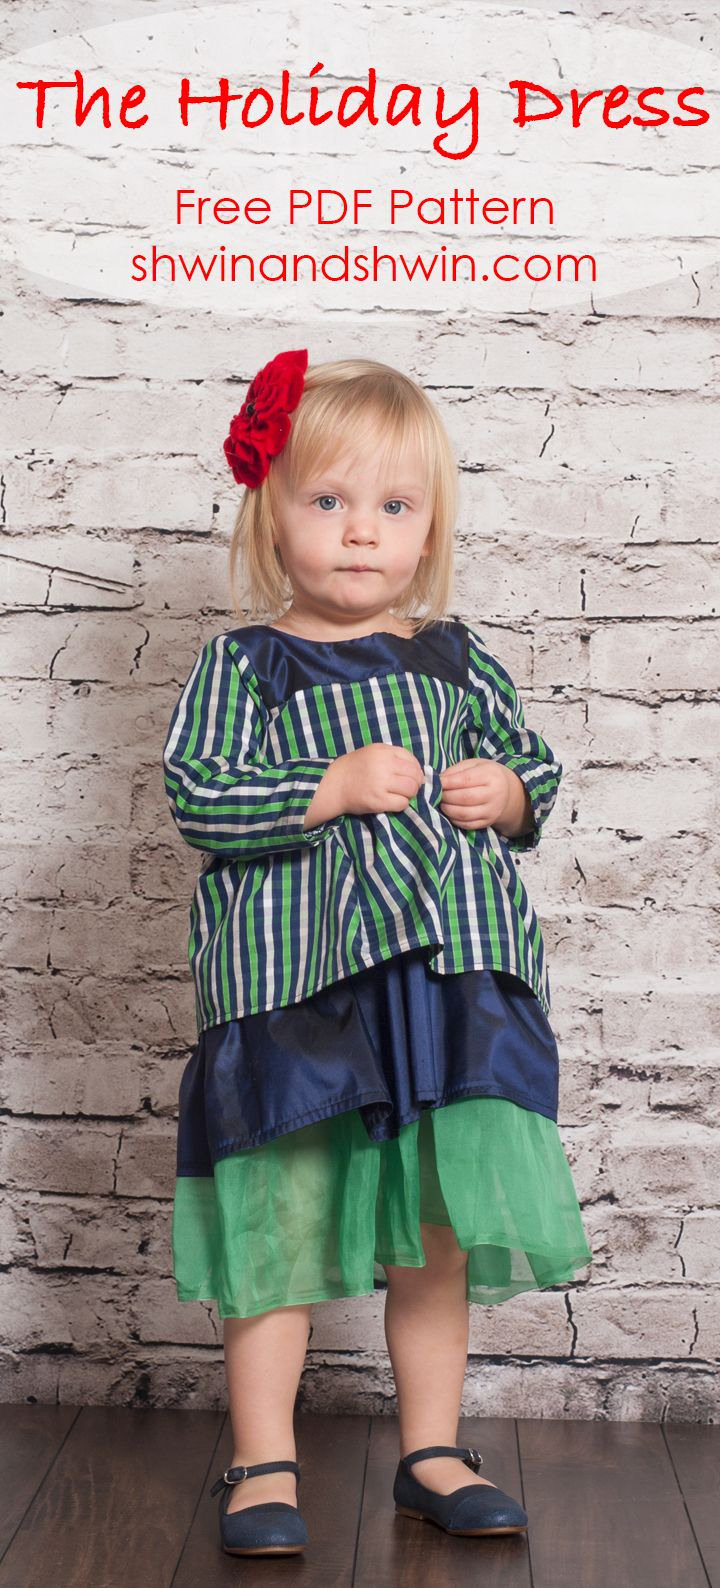 Holiday Dress Pattern || Free PDF Pattern || Shwin&Shwin  sizes 12 mos to 8 yrs